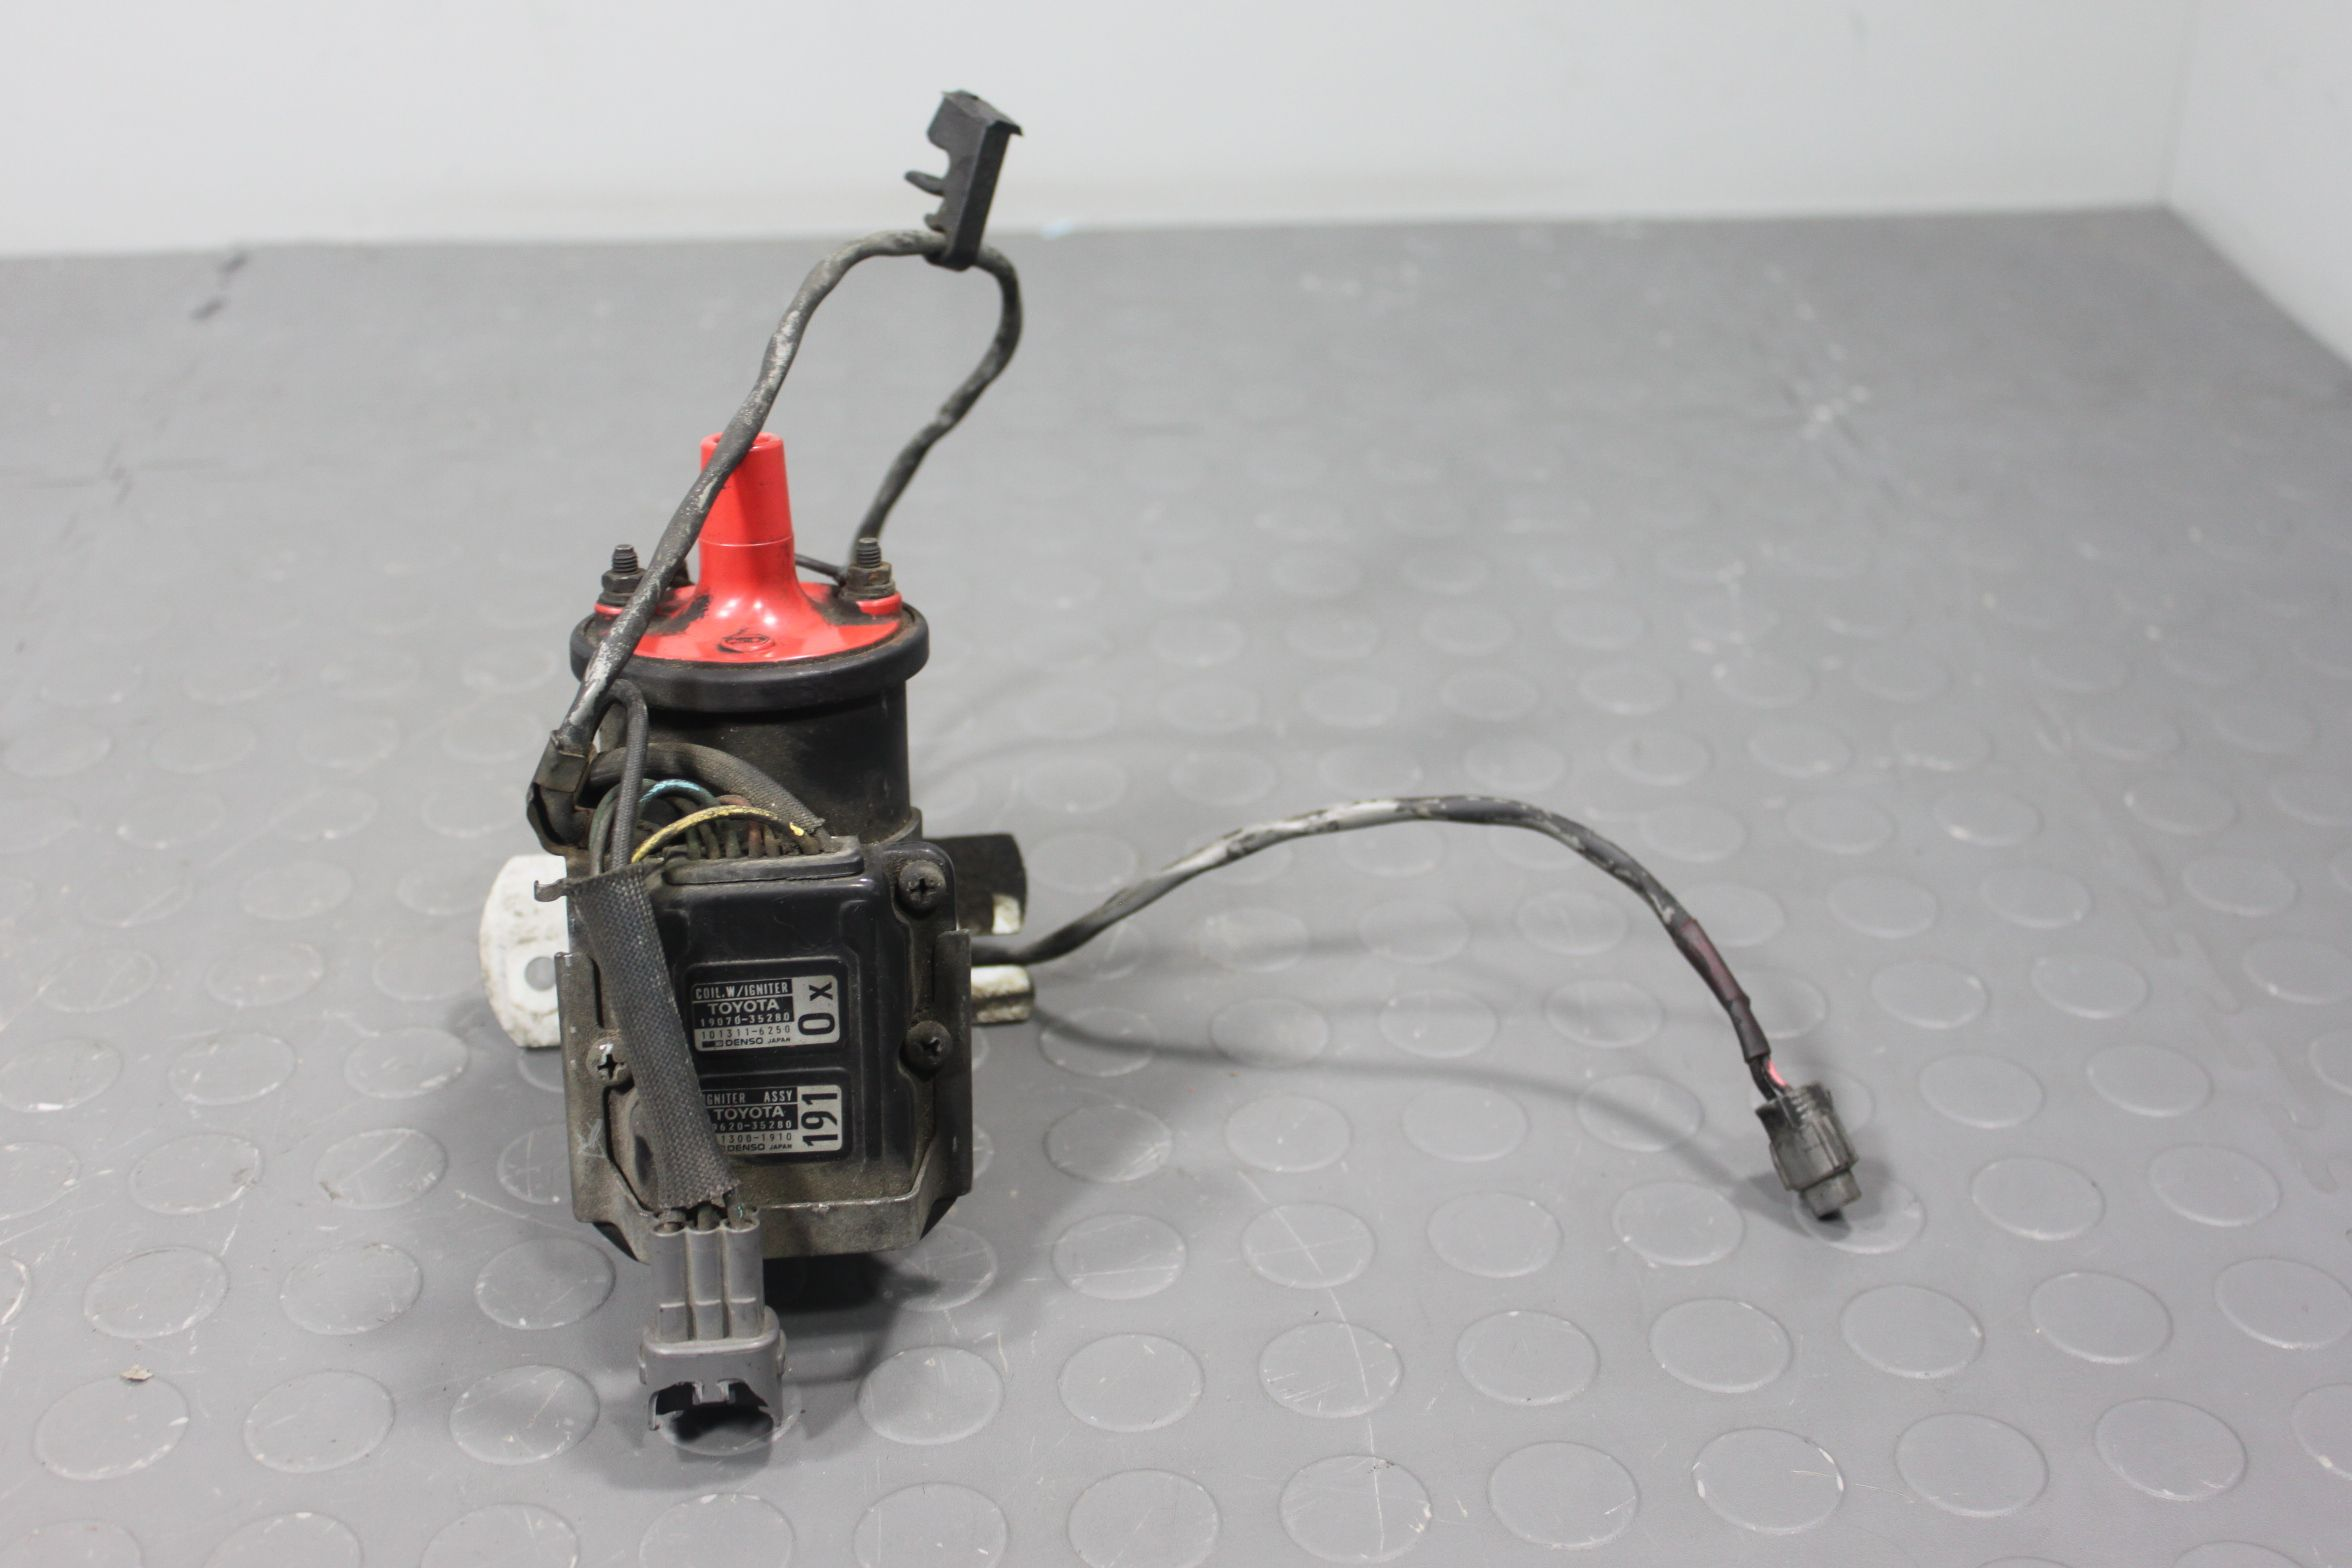 89 90 91 Toyota 4runner Pickup Truck 22re Ignition Coil Ignitor 19070